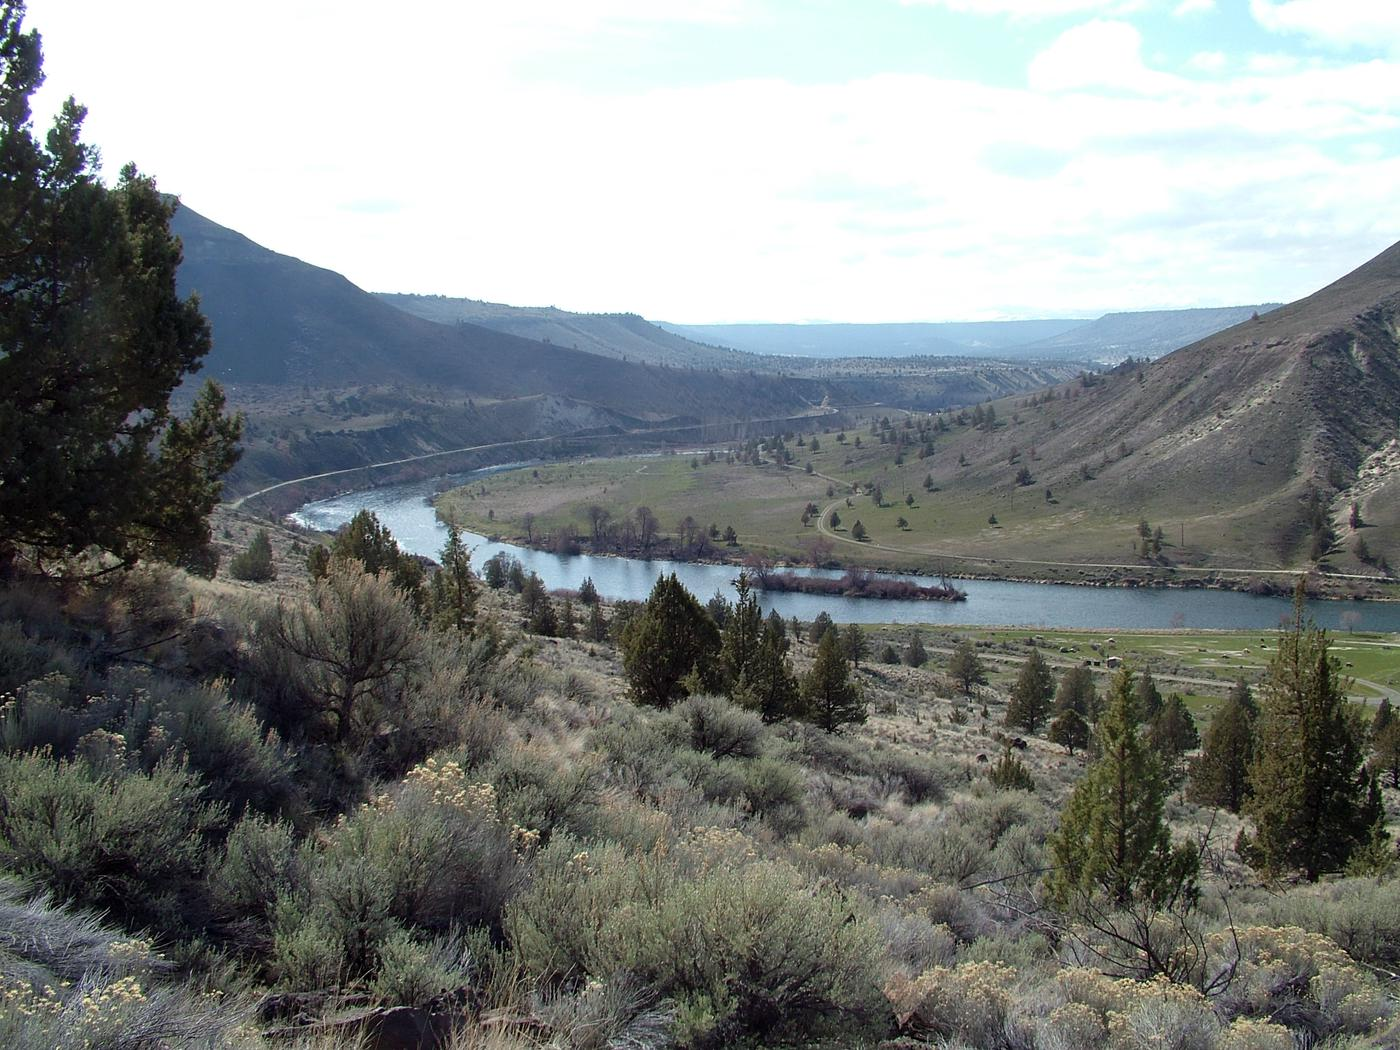 Looking down on Mecca Flat Campground and the Deschutes Wild & Scenic River.